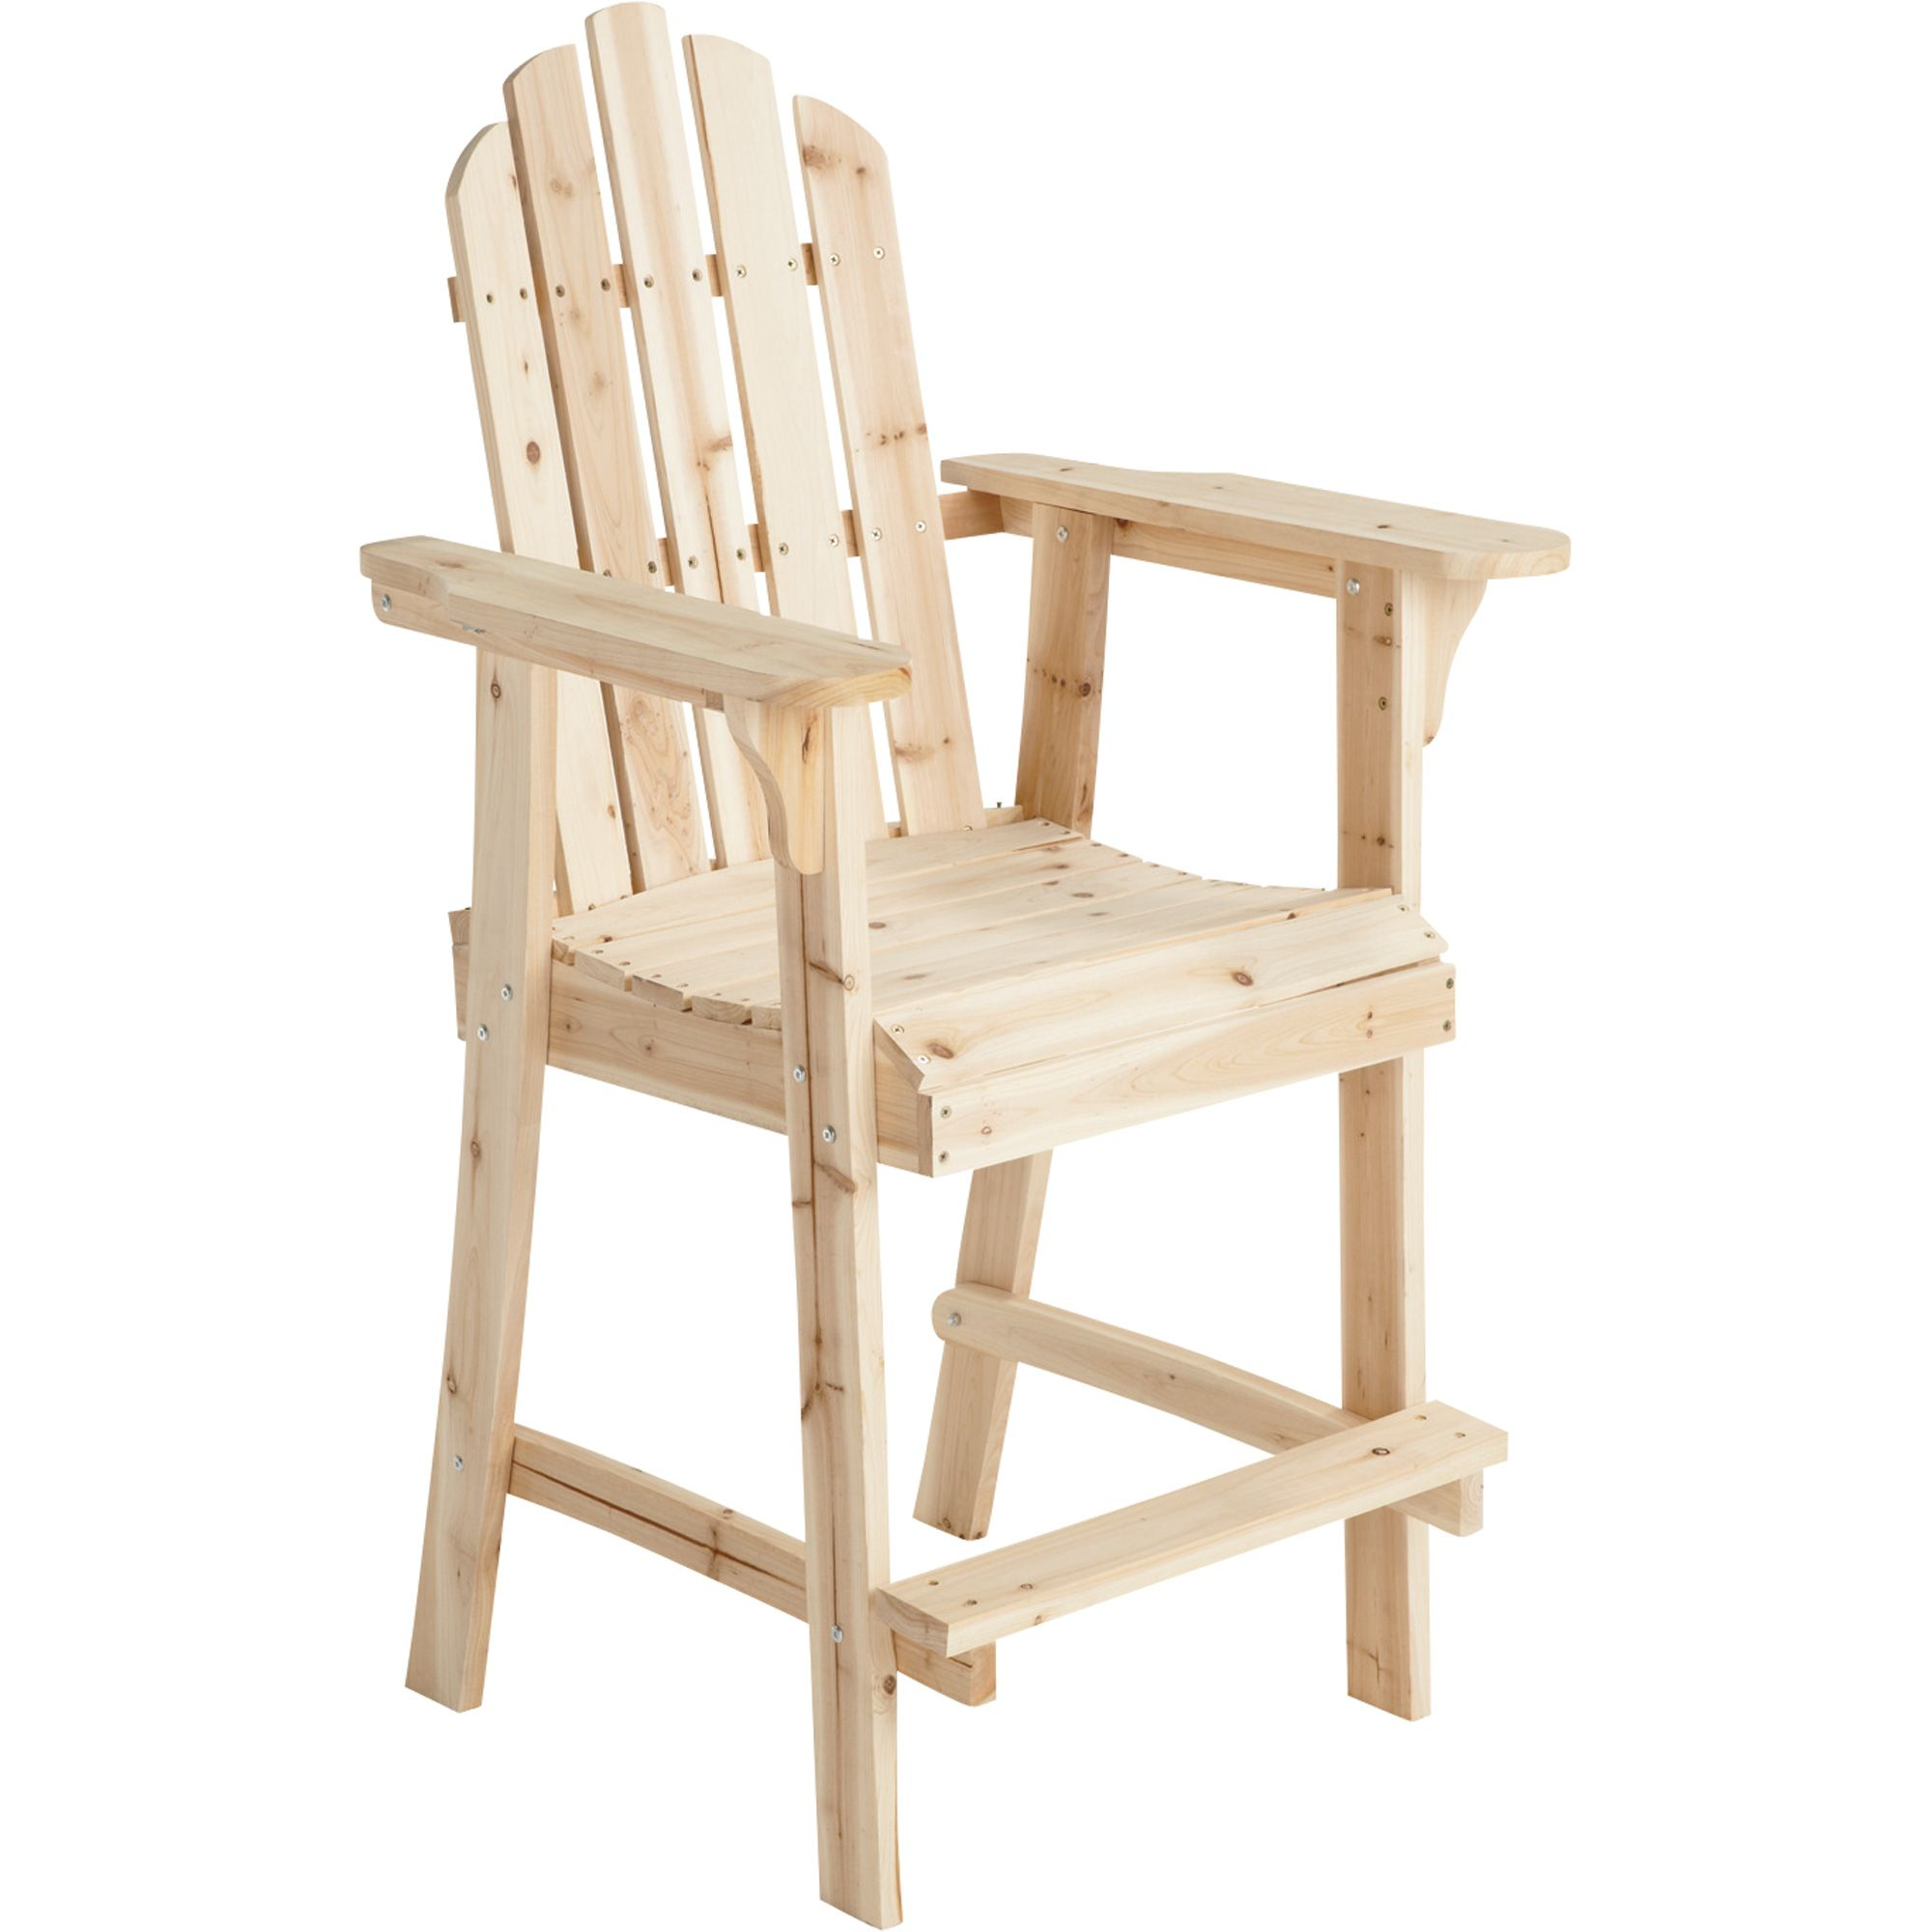 Tall Adirondack Chair Plans For The Home Pinterest Woodworking Bar Chairs And Woods